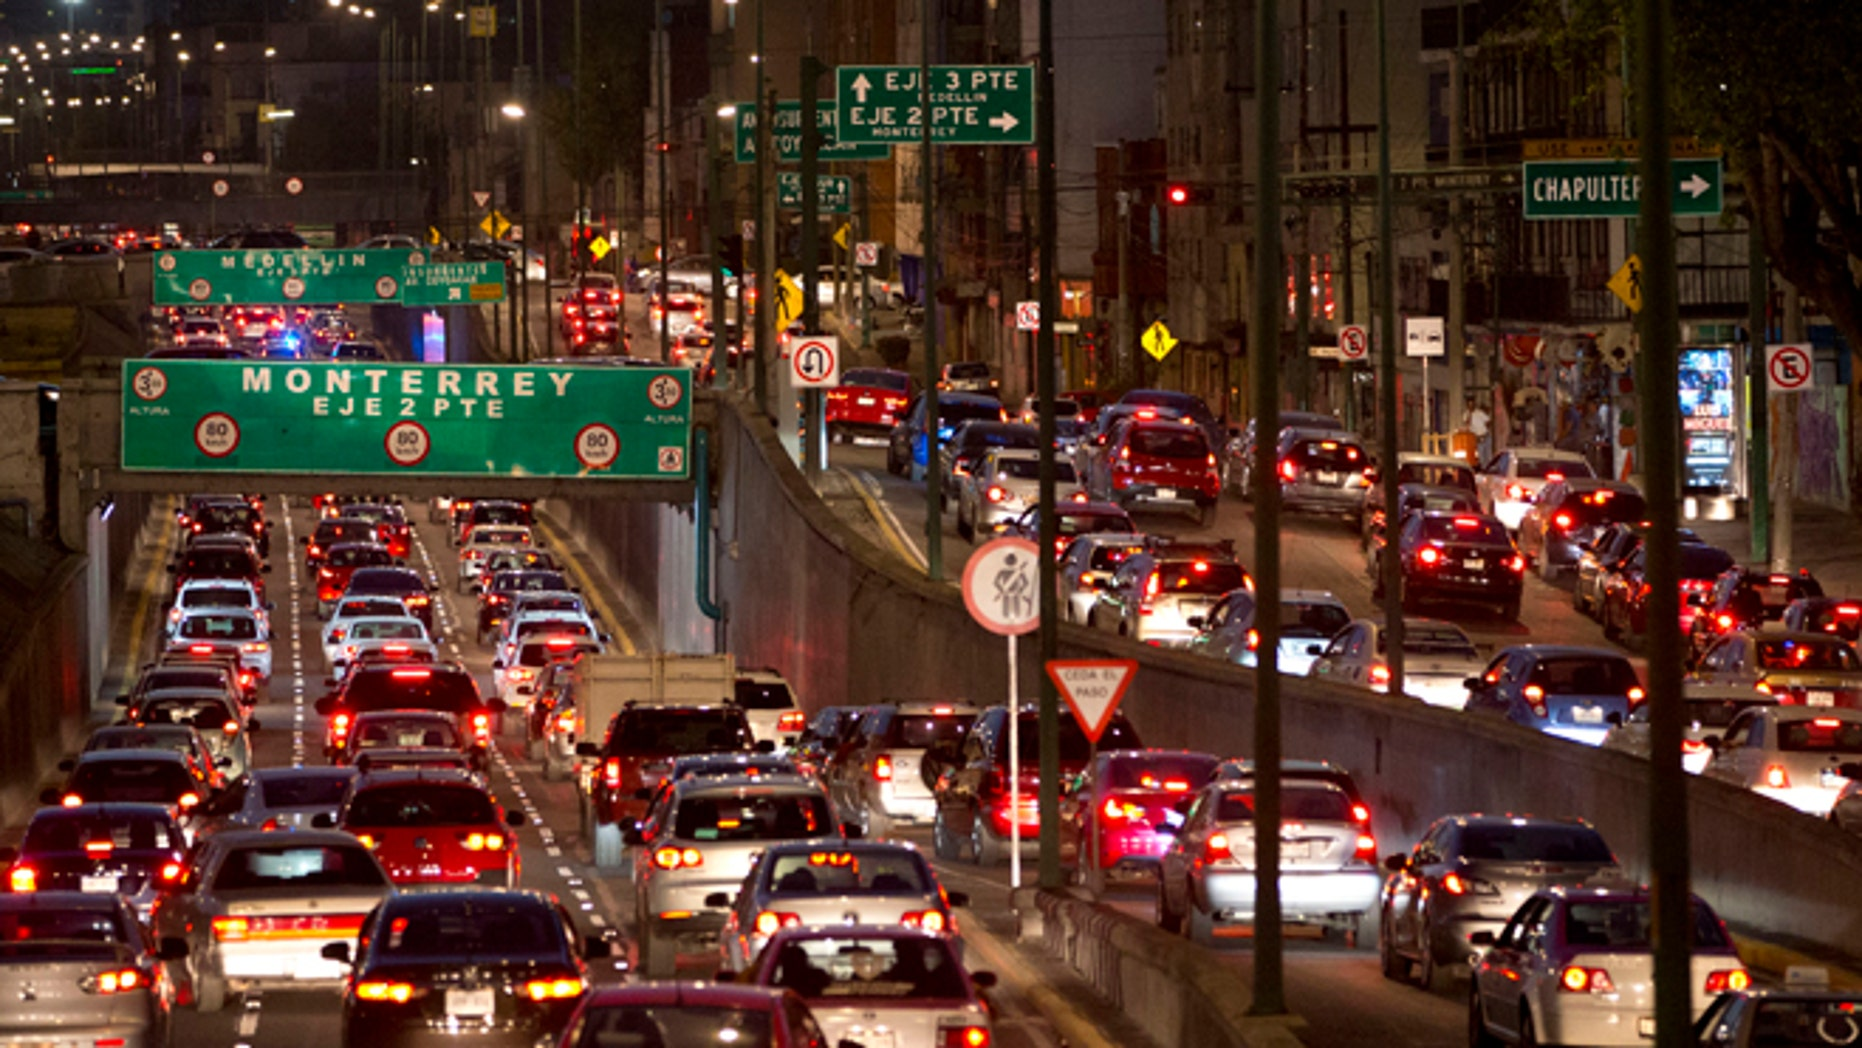 Cars sit in evening rush hour traffic in Mexico City, Wednesday, March 30, 2016. Metropolitan authorities on Wednesday temporarily ordered all cars to remain idle one day a week in response to this notoriously smoggy capital's worst air-quality crisis in over a decade. (AP Photo/Rebecca Blackwell)